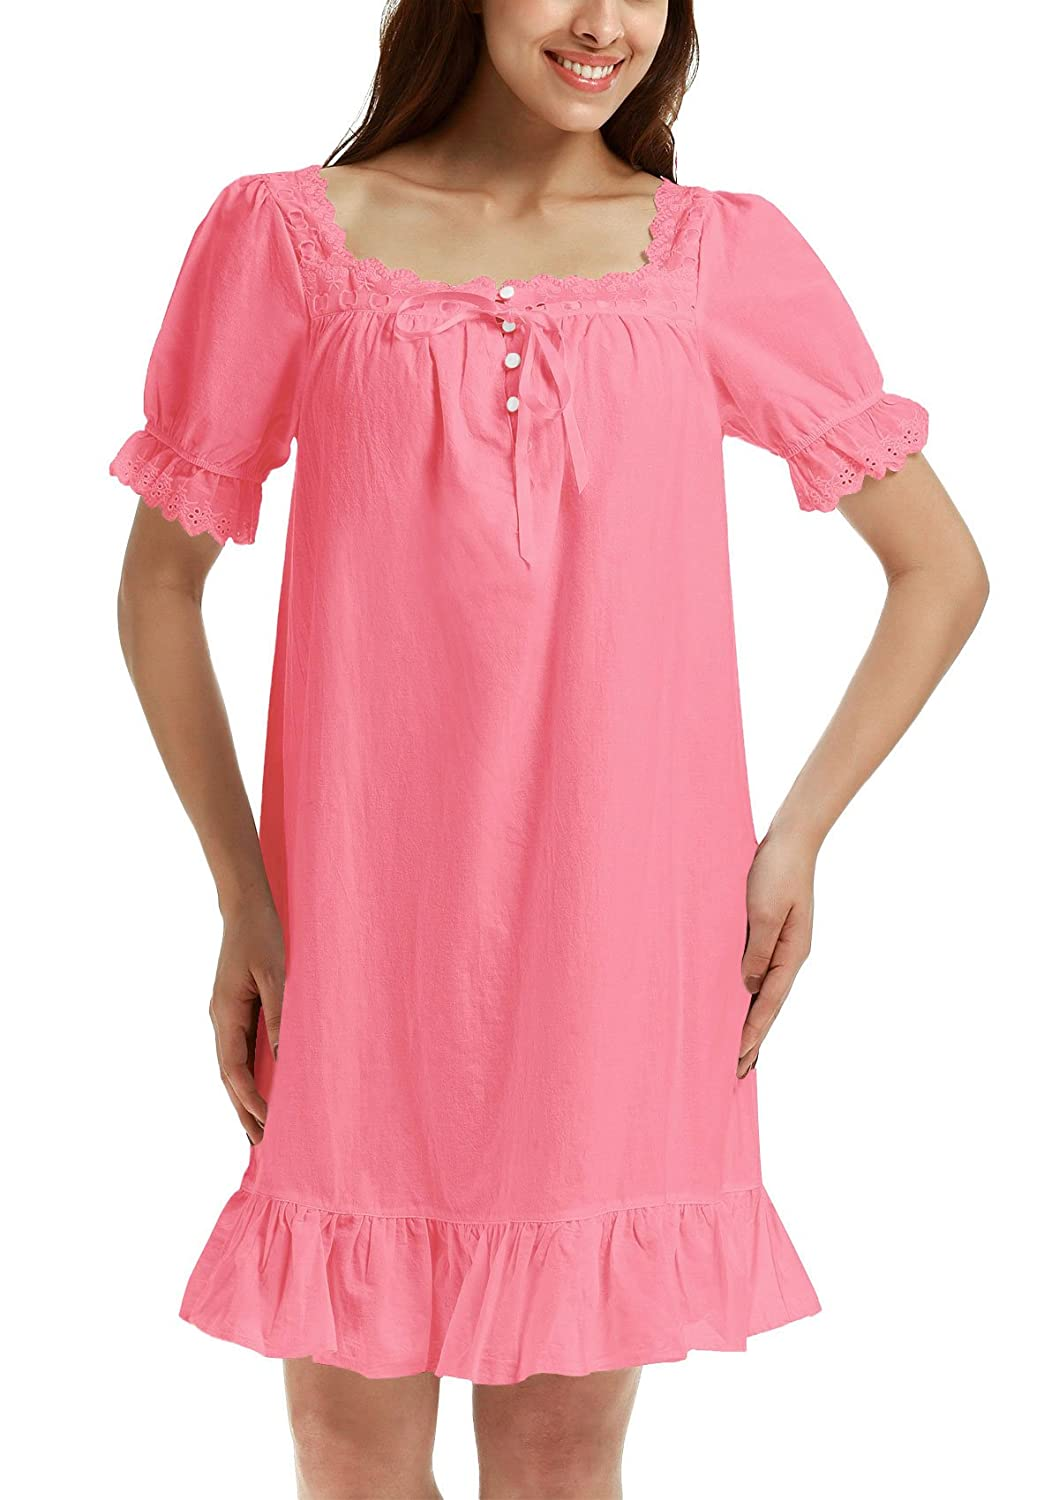 1960s – 1970s Lingerie & Nightgowns Adorneve Womens Cotton Sleepwear Soft Nightdress Victorian Vintage Nightgown $9.99 AT vintagedancer.com